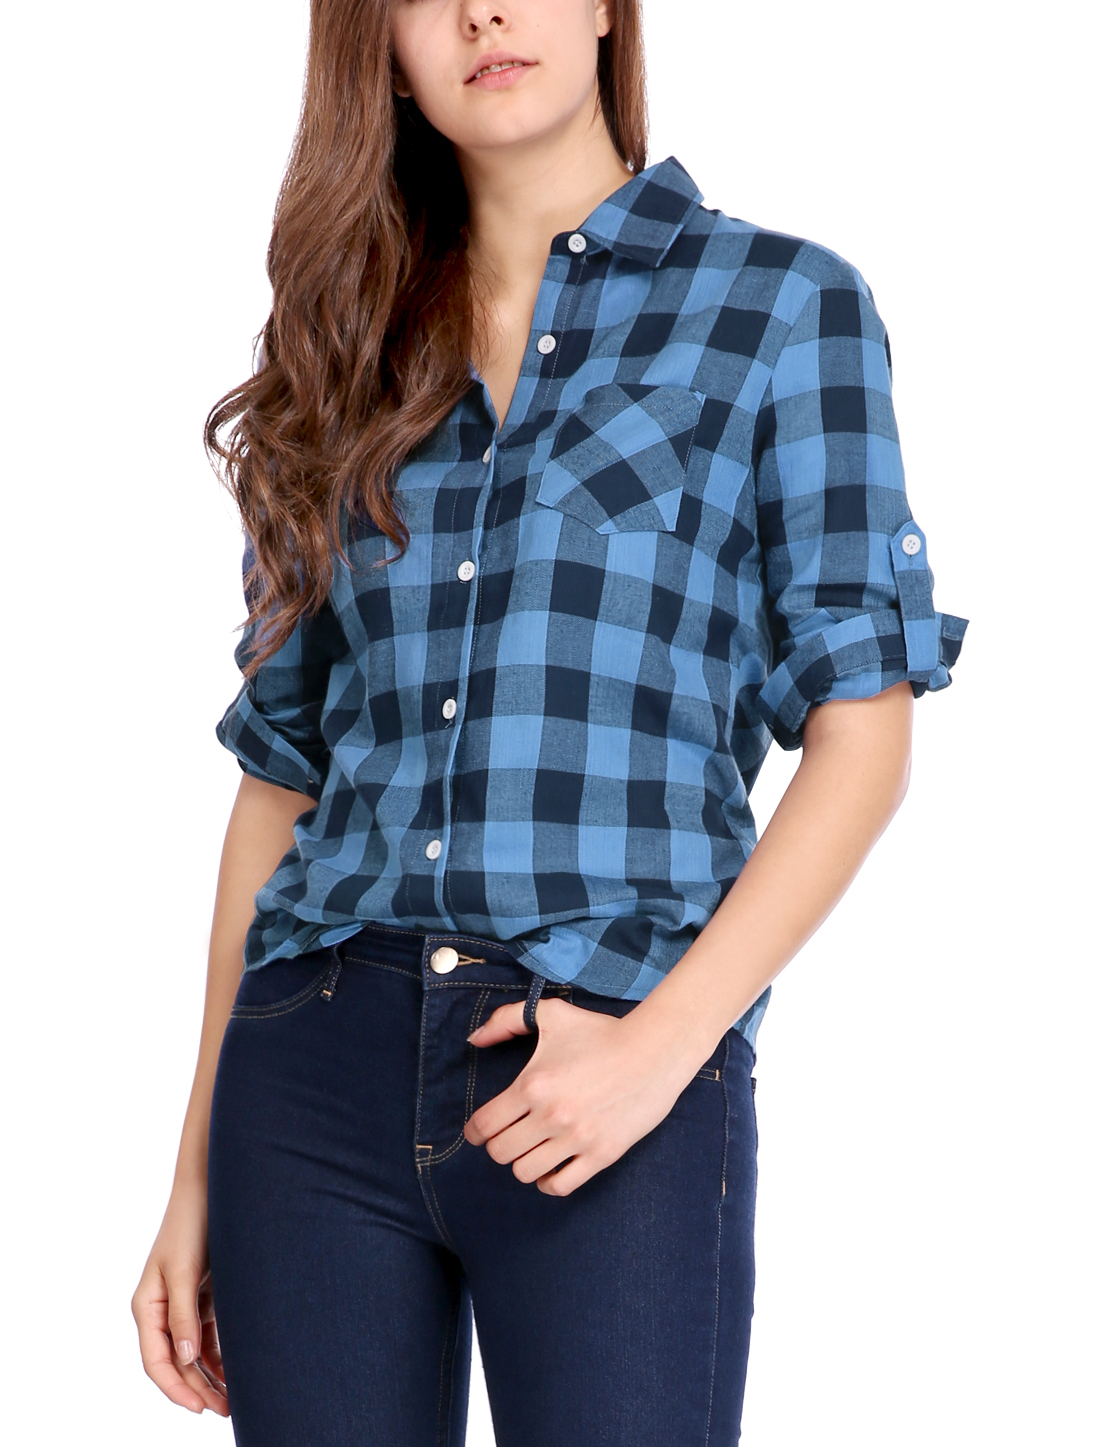 Woman Roll Up Sleeves Button Closed Casual Plaid Shirt Black Blue XL